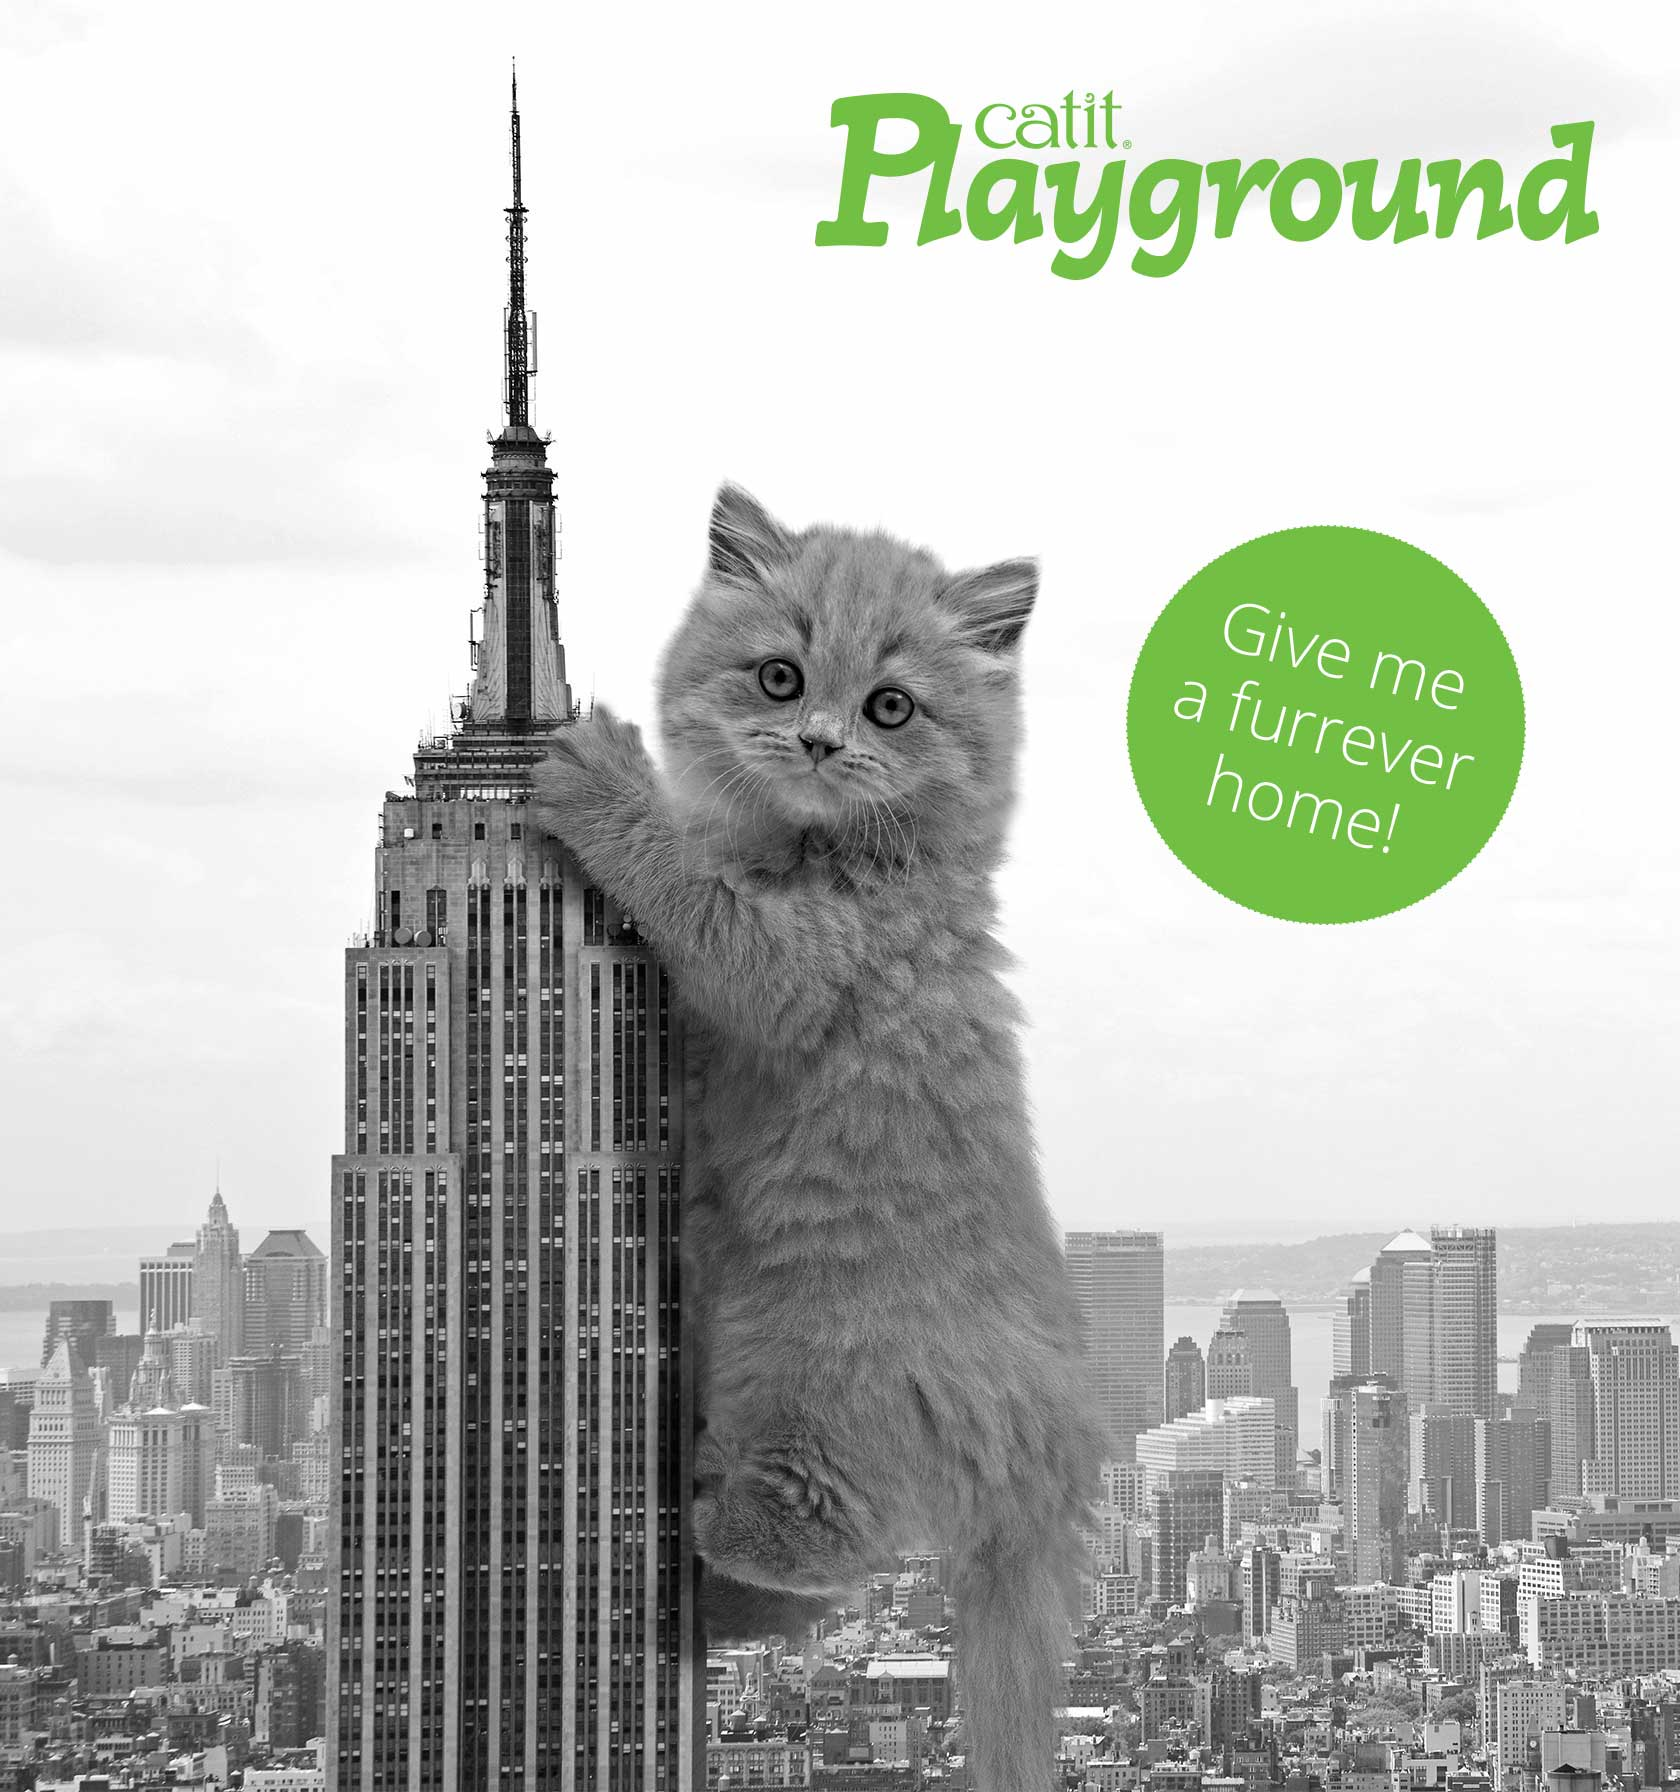 Giant kitten climbing a skyscraper with a city landscape in the background